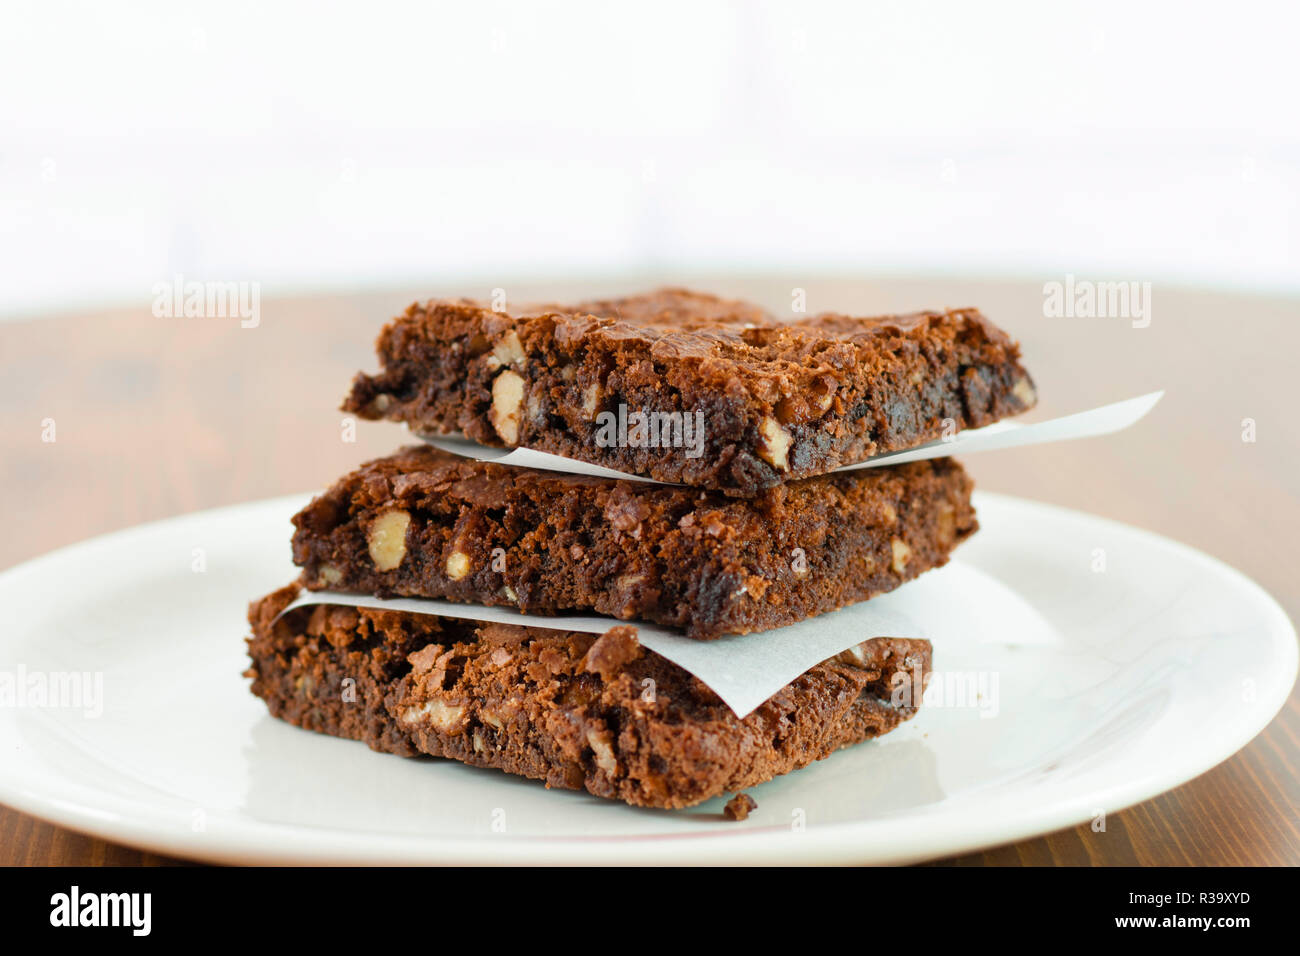 Sliced delicious brownie with hot chocolate melting sauce on it. - Stock Image